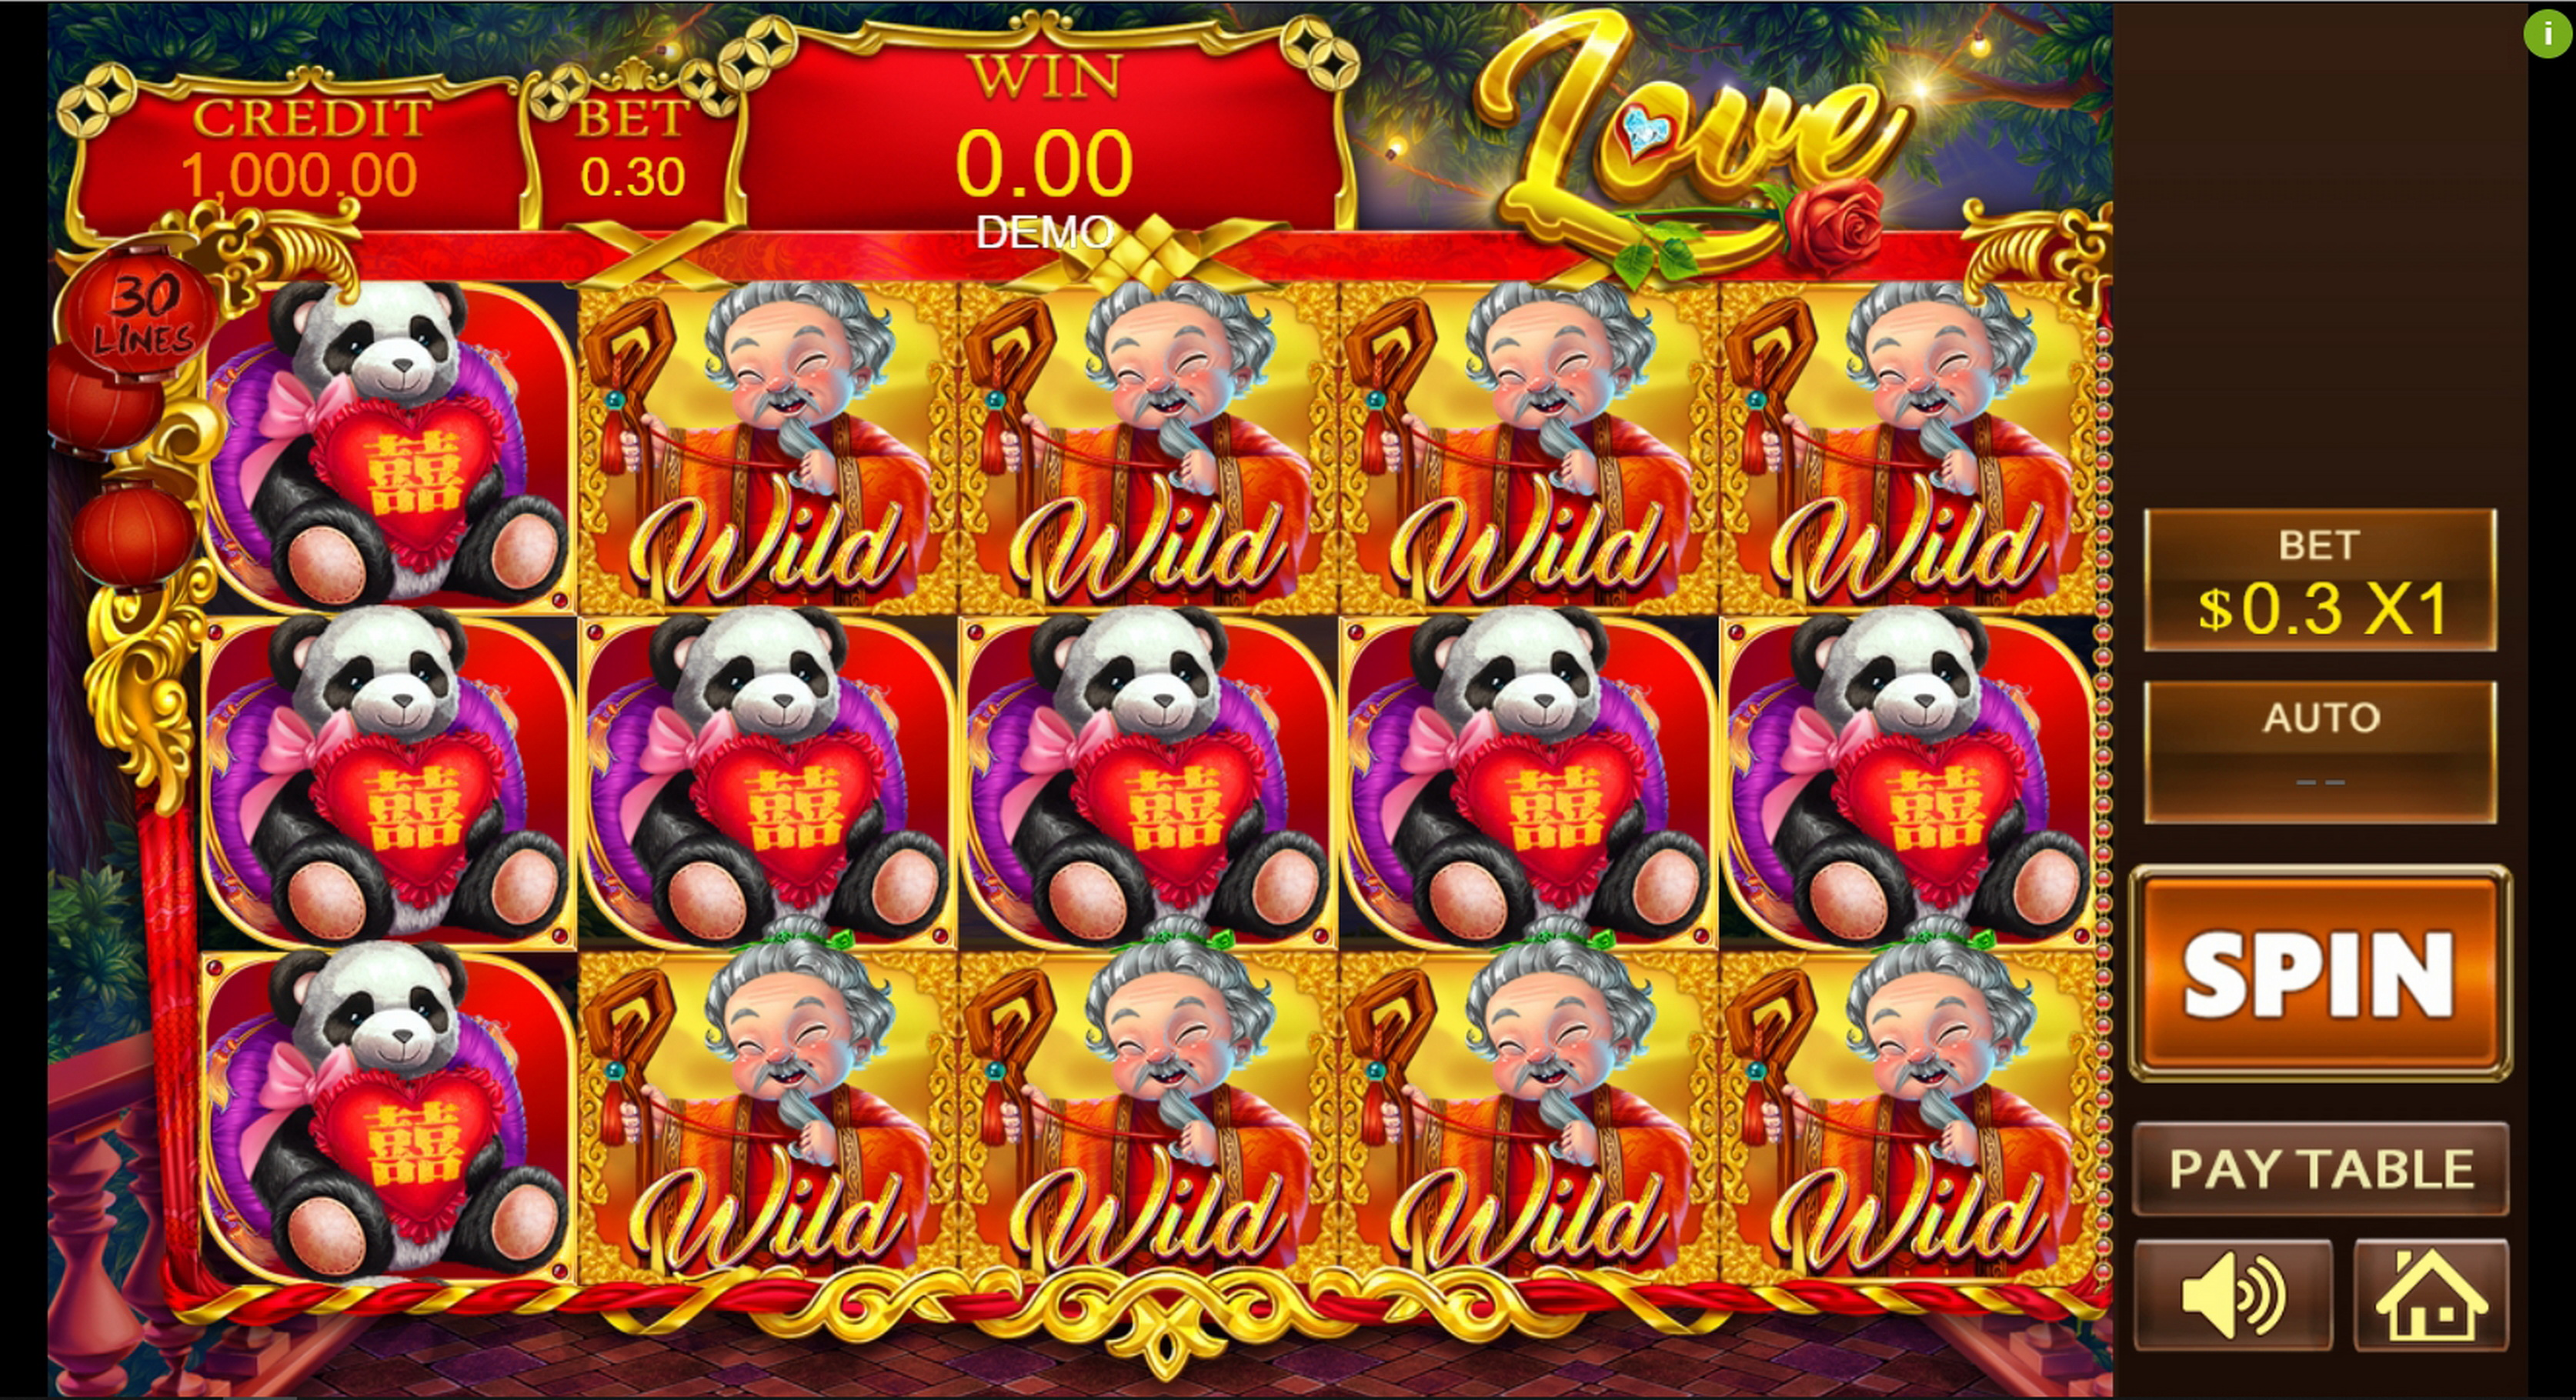 Reels in Love (PlayStar) Slot Game by PlayStar